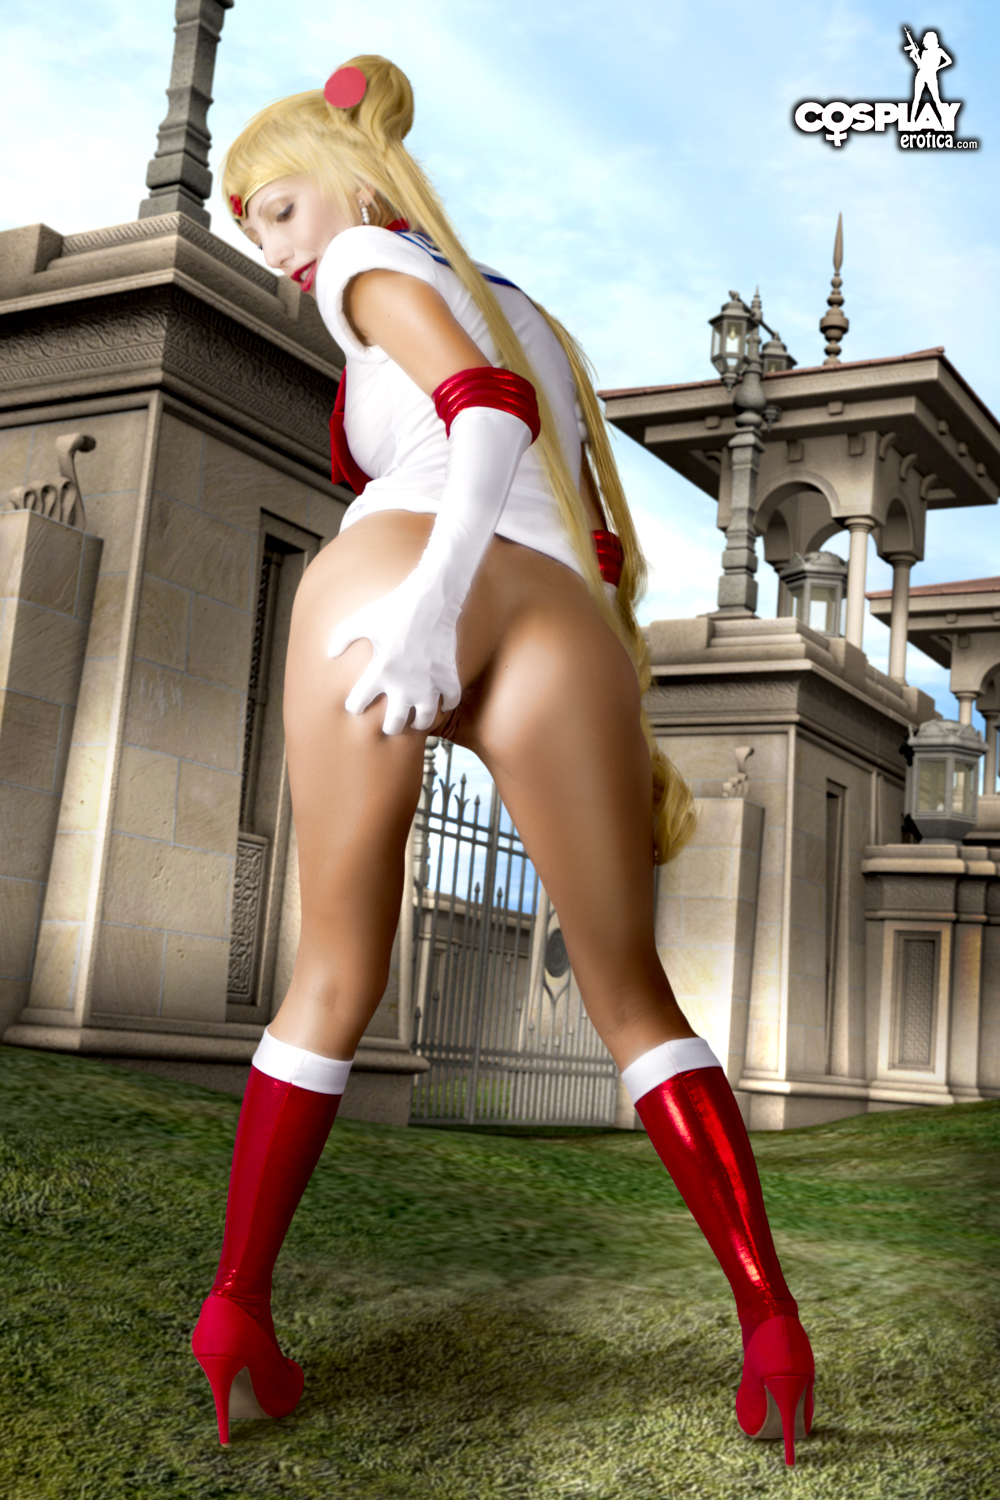 Are not sailor moon erotica gallery simply